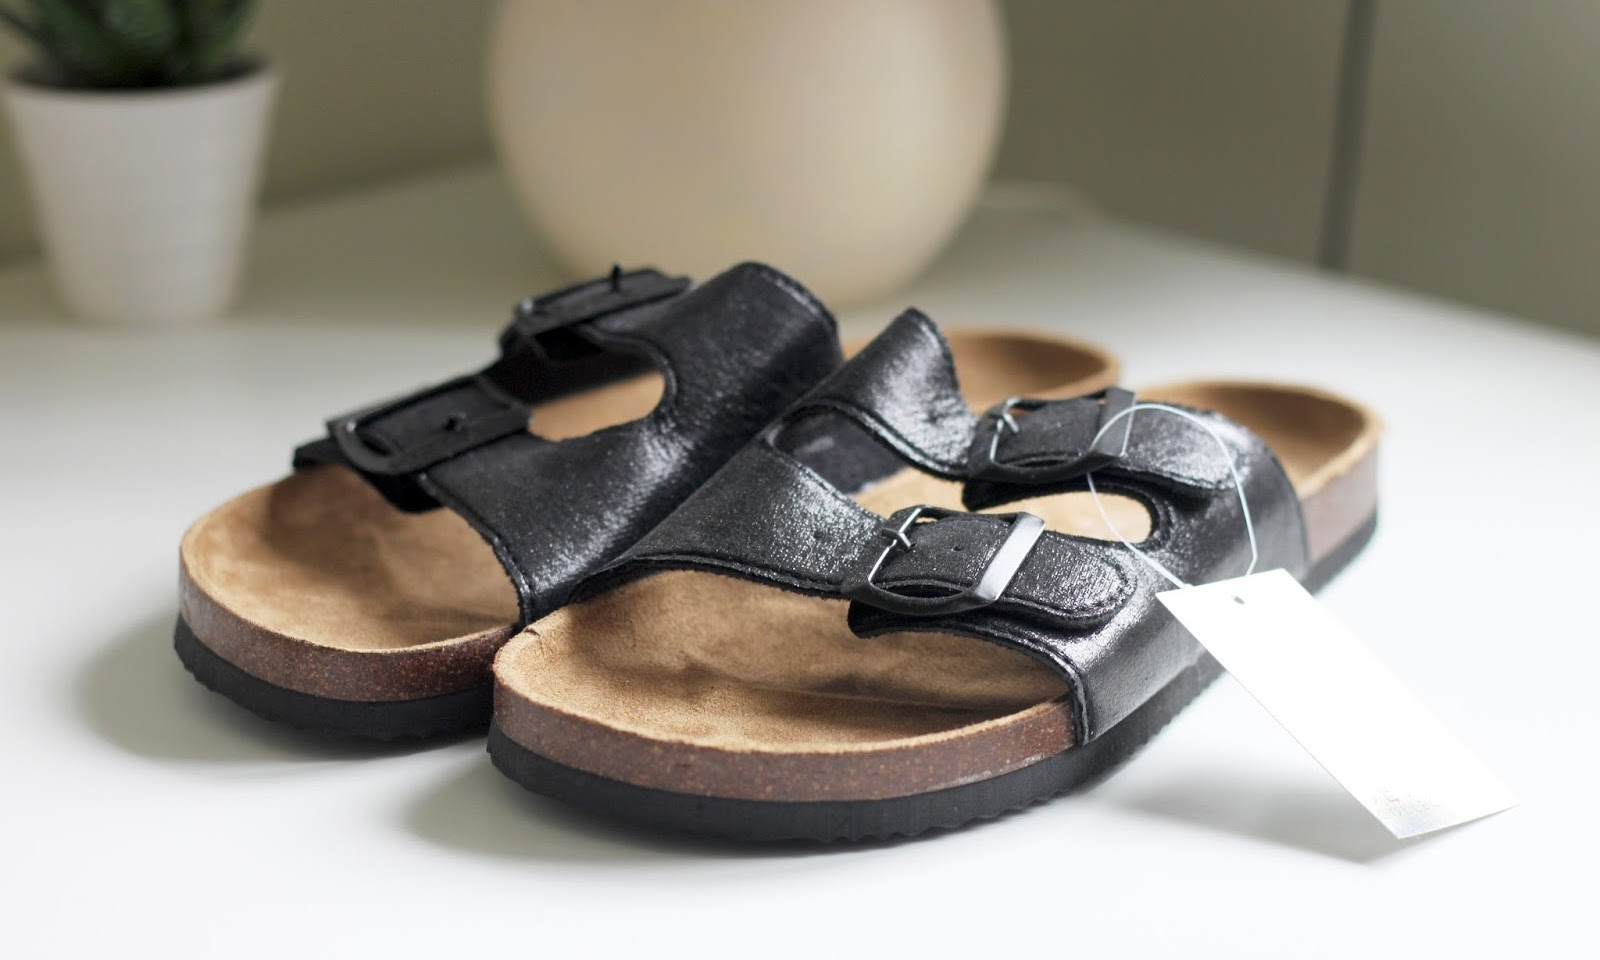 Clashing Time: Sandals I can't live without